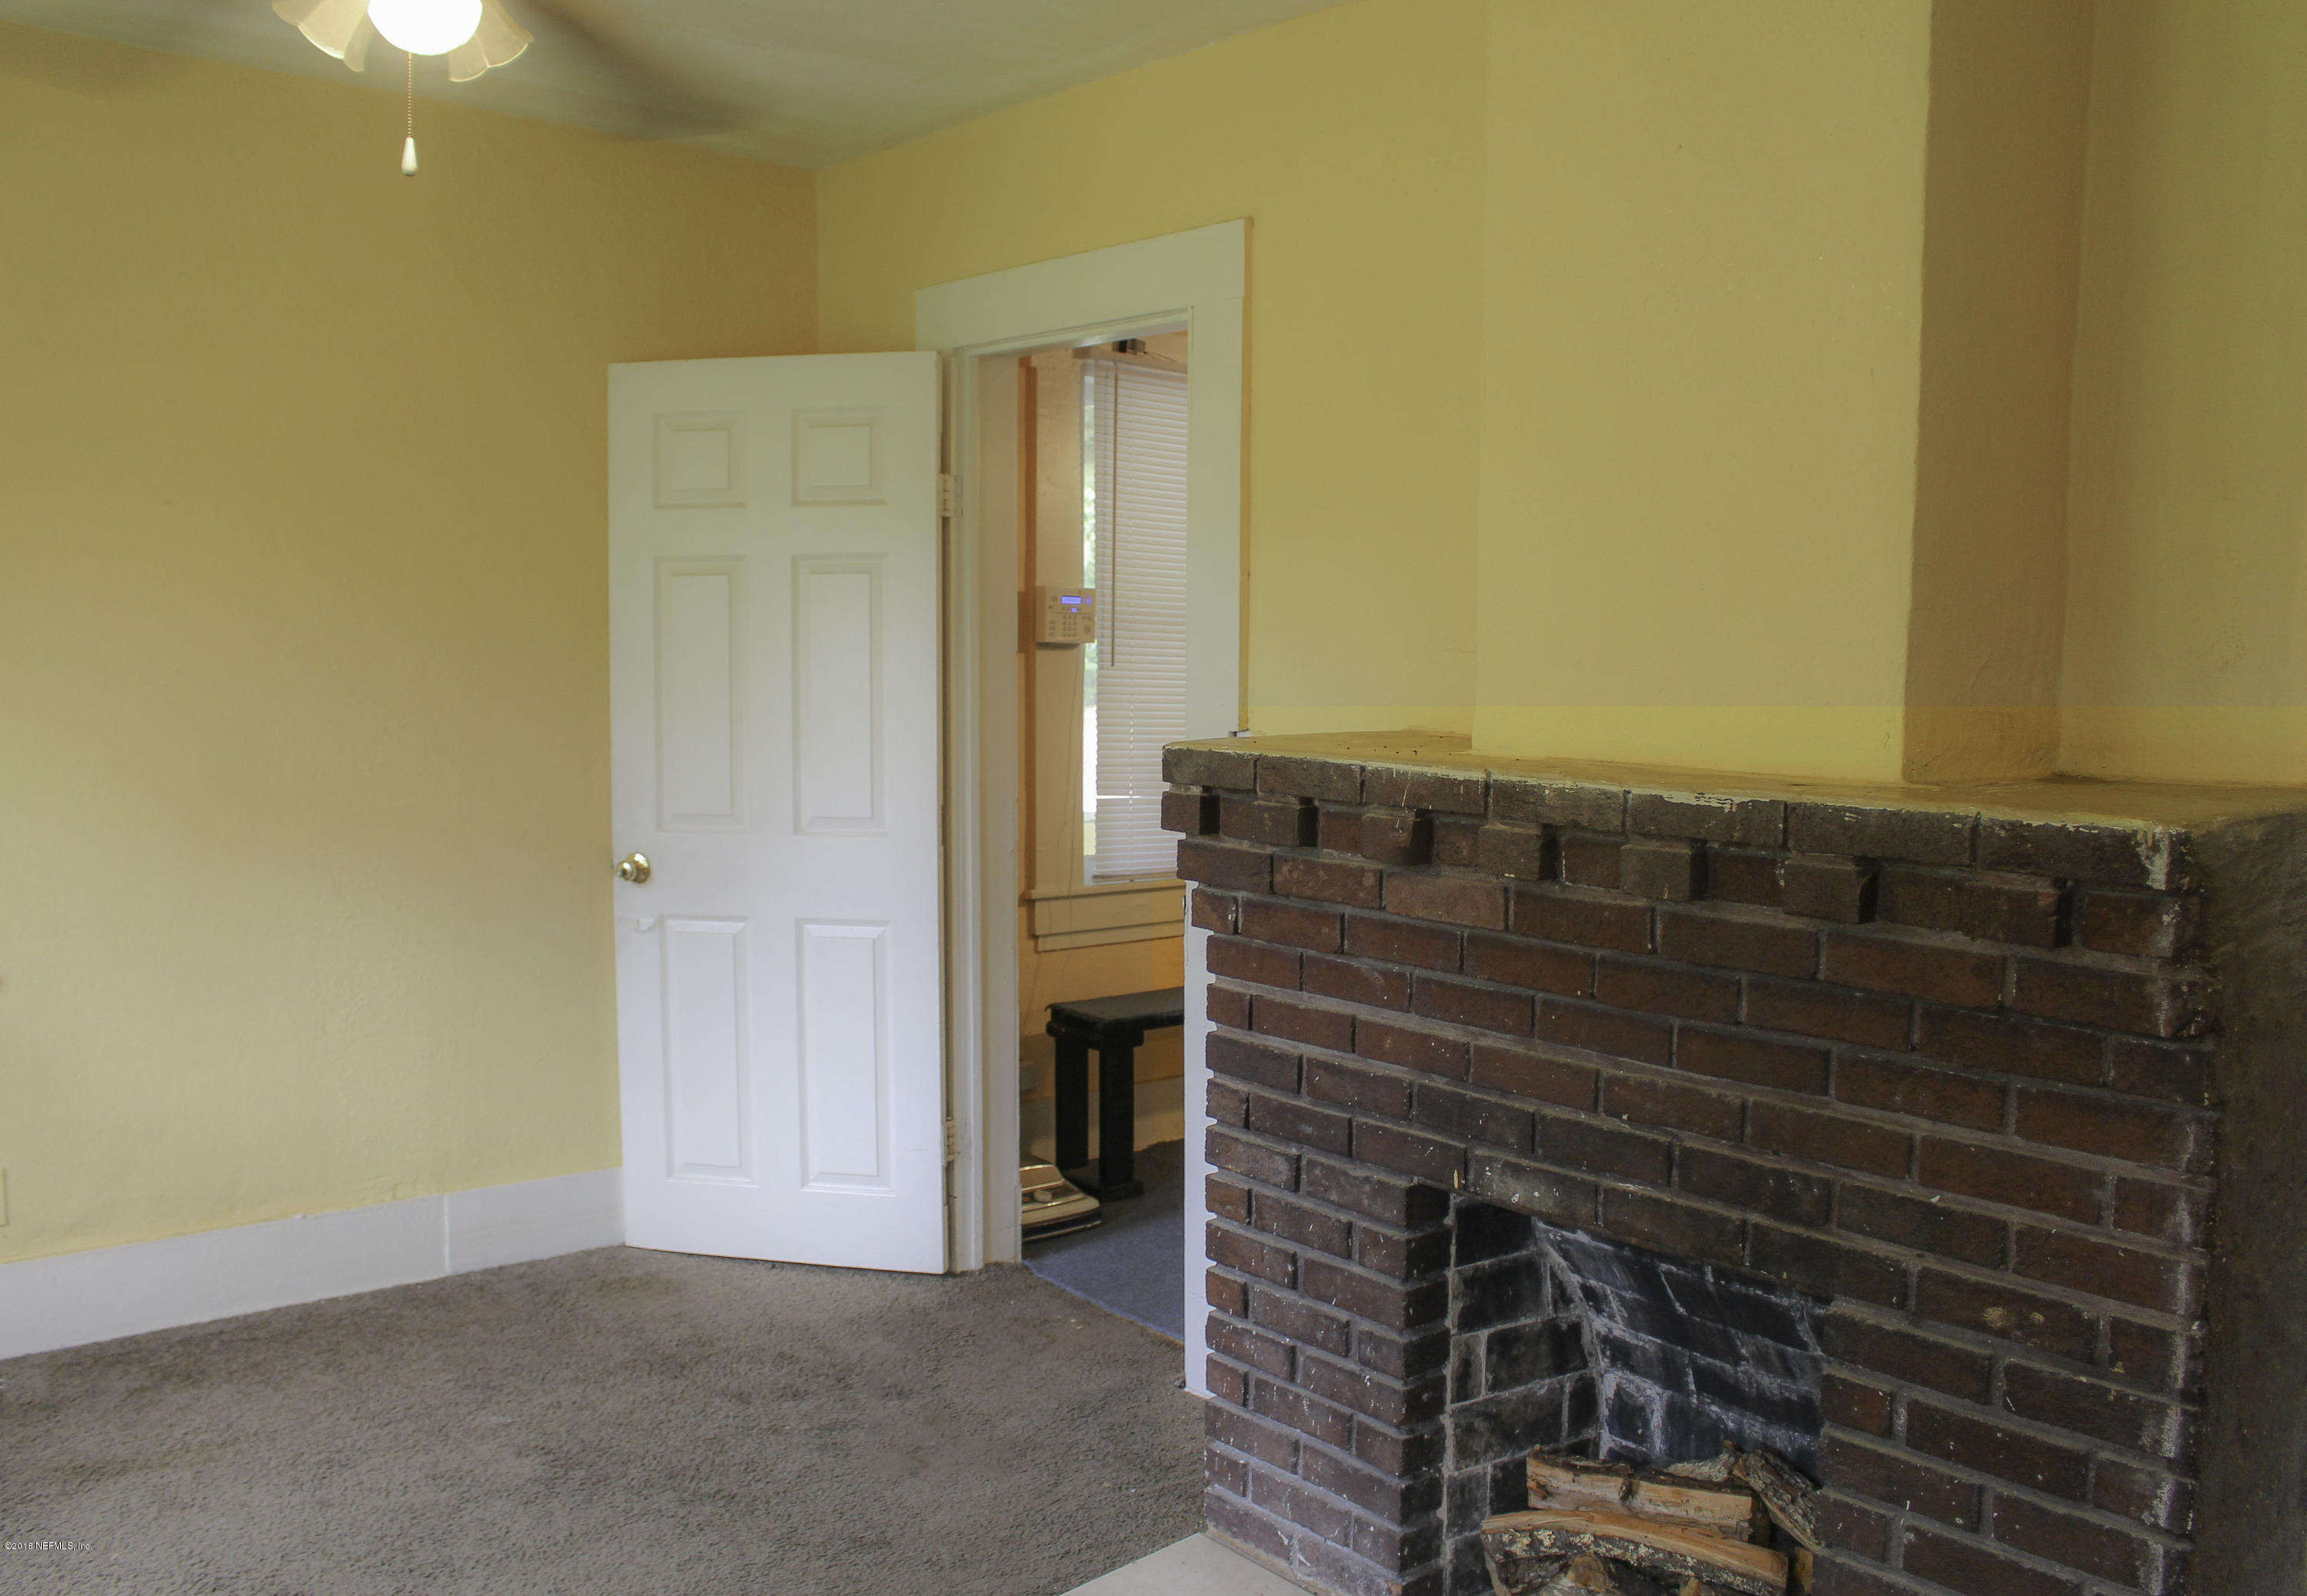 9175 2ND, JACKSONVILLE, FLORIDA 32208, 2 Bedrooms Bedrooms, ,1 BathroomBathrooms,Residential - single family,For sale,2ND,937564